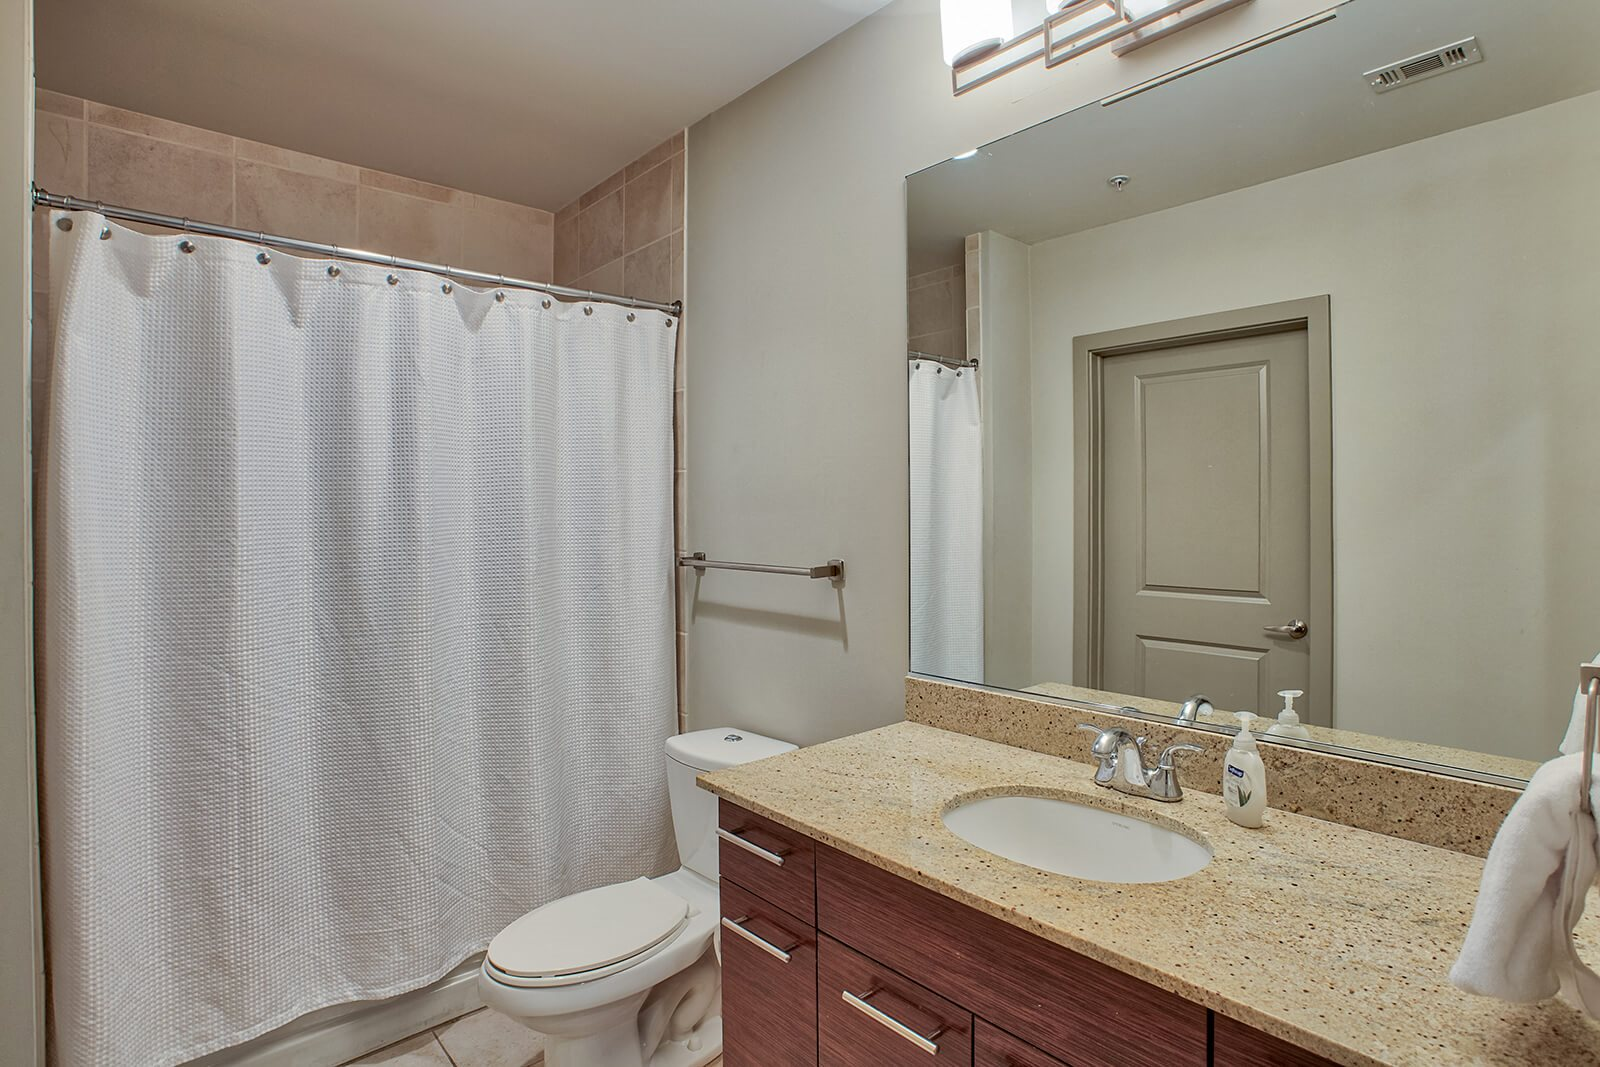 Showers and Soaking Tubs in Bathrooms at Glass House by Windsor, Dallas, Texas